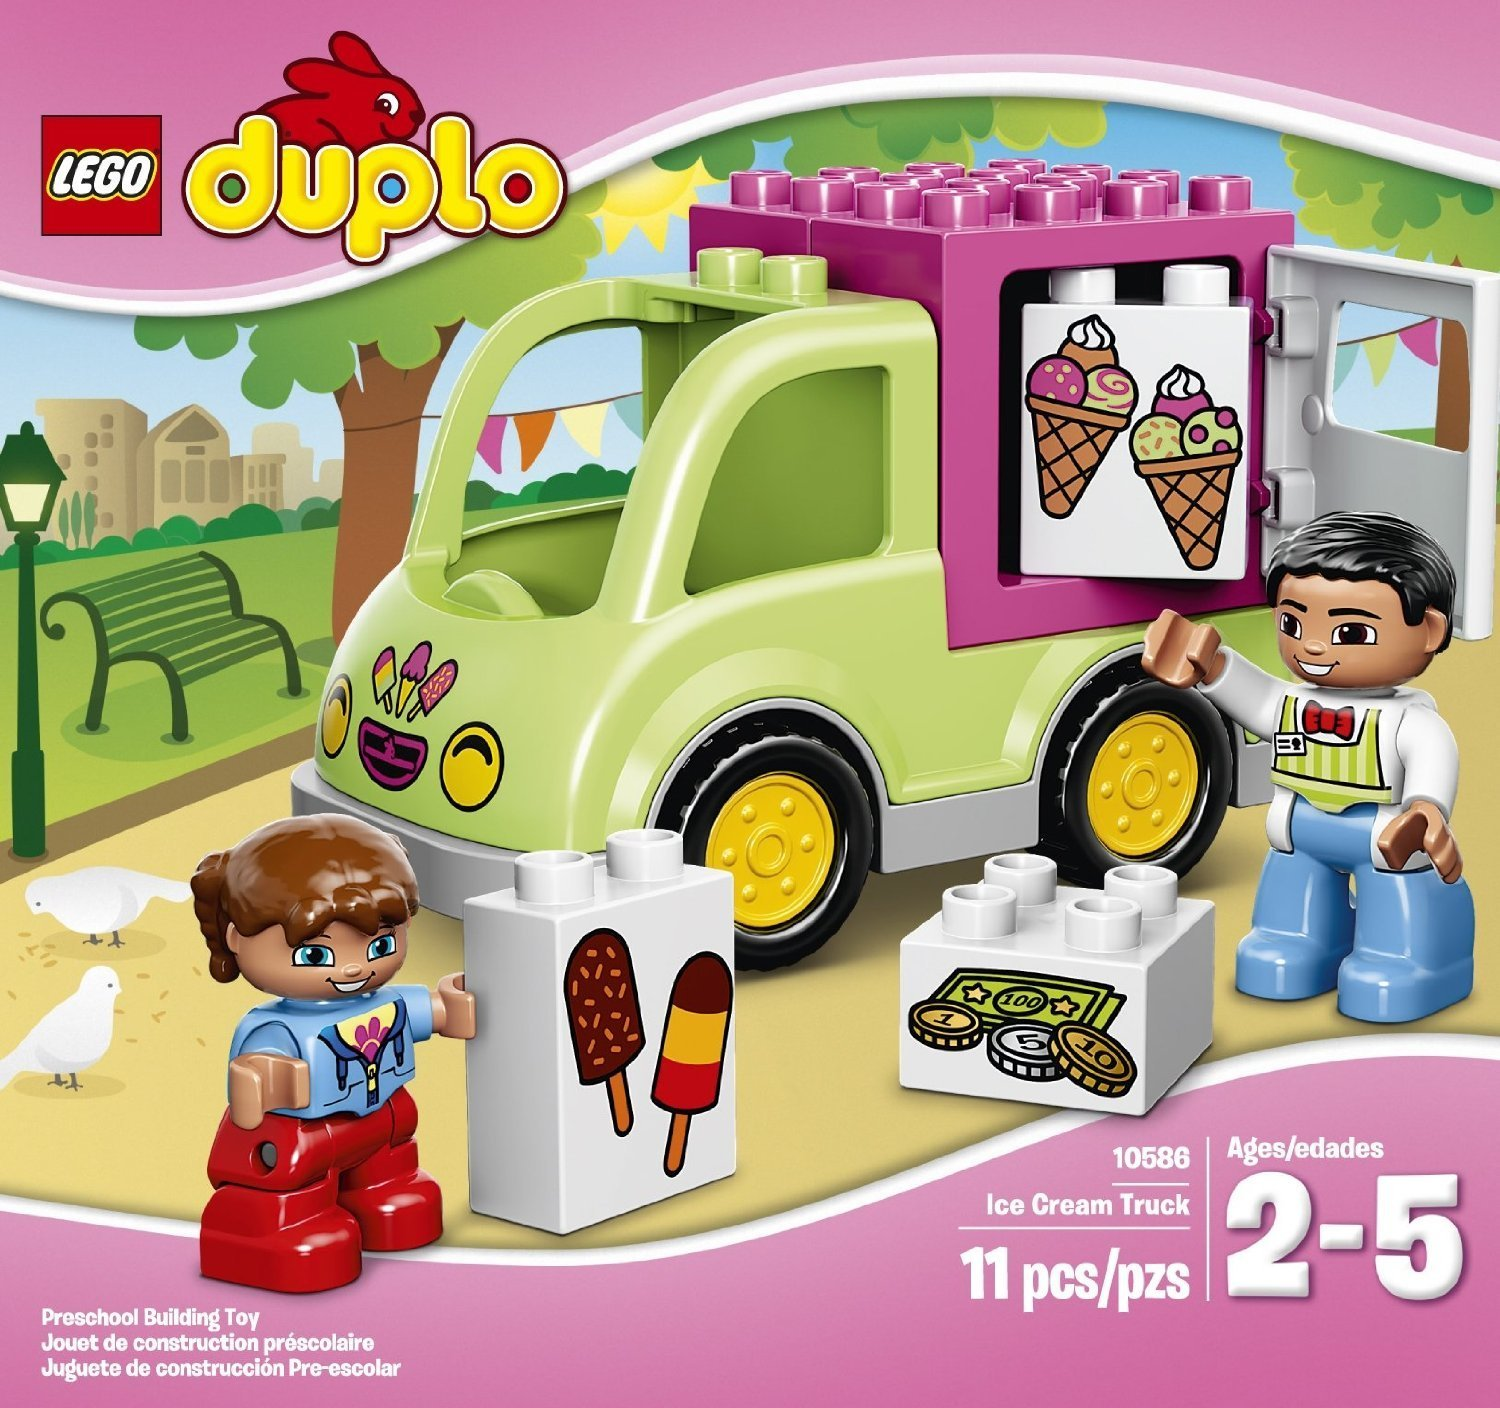 Cheap Toy Ice Cream Truck Find Toy Ice Cream Truck Deals On Line At